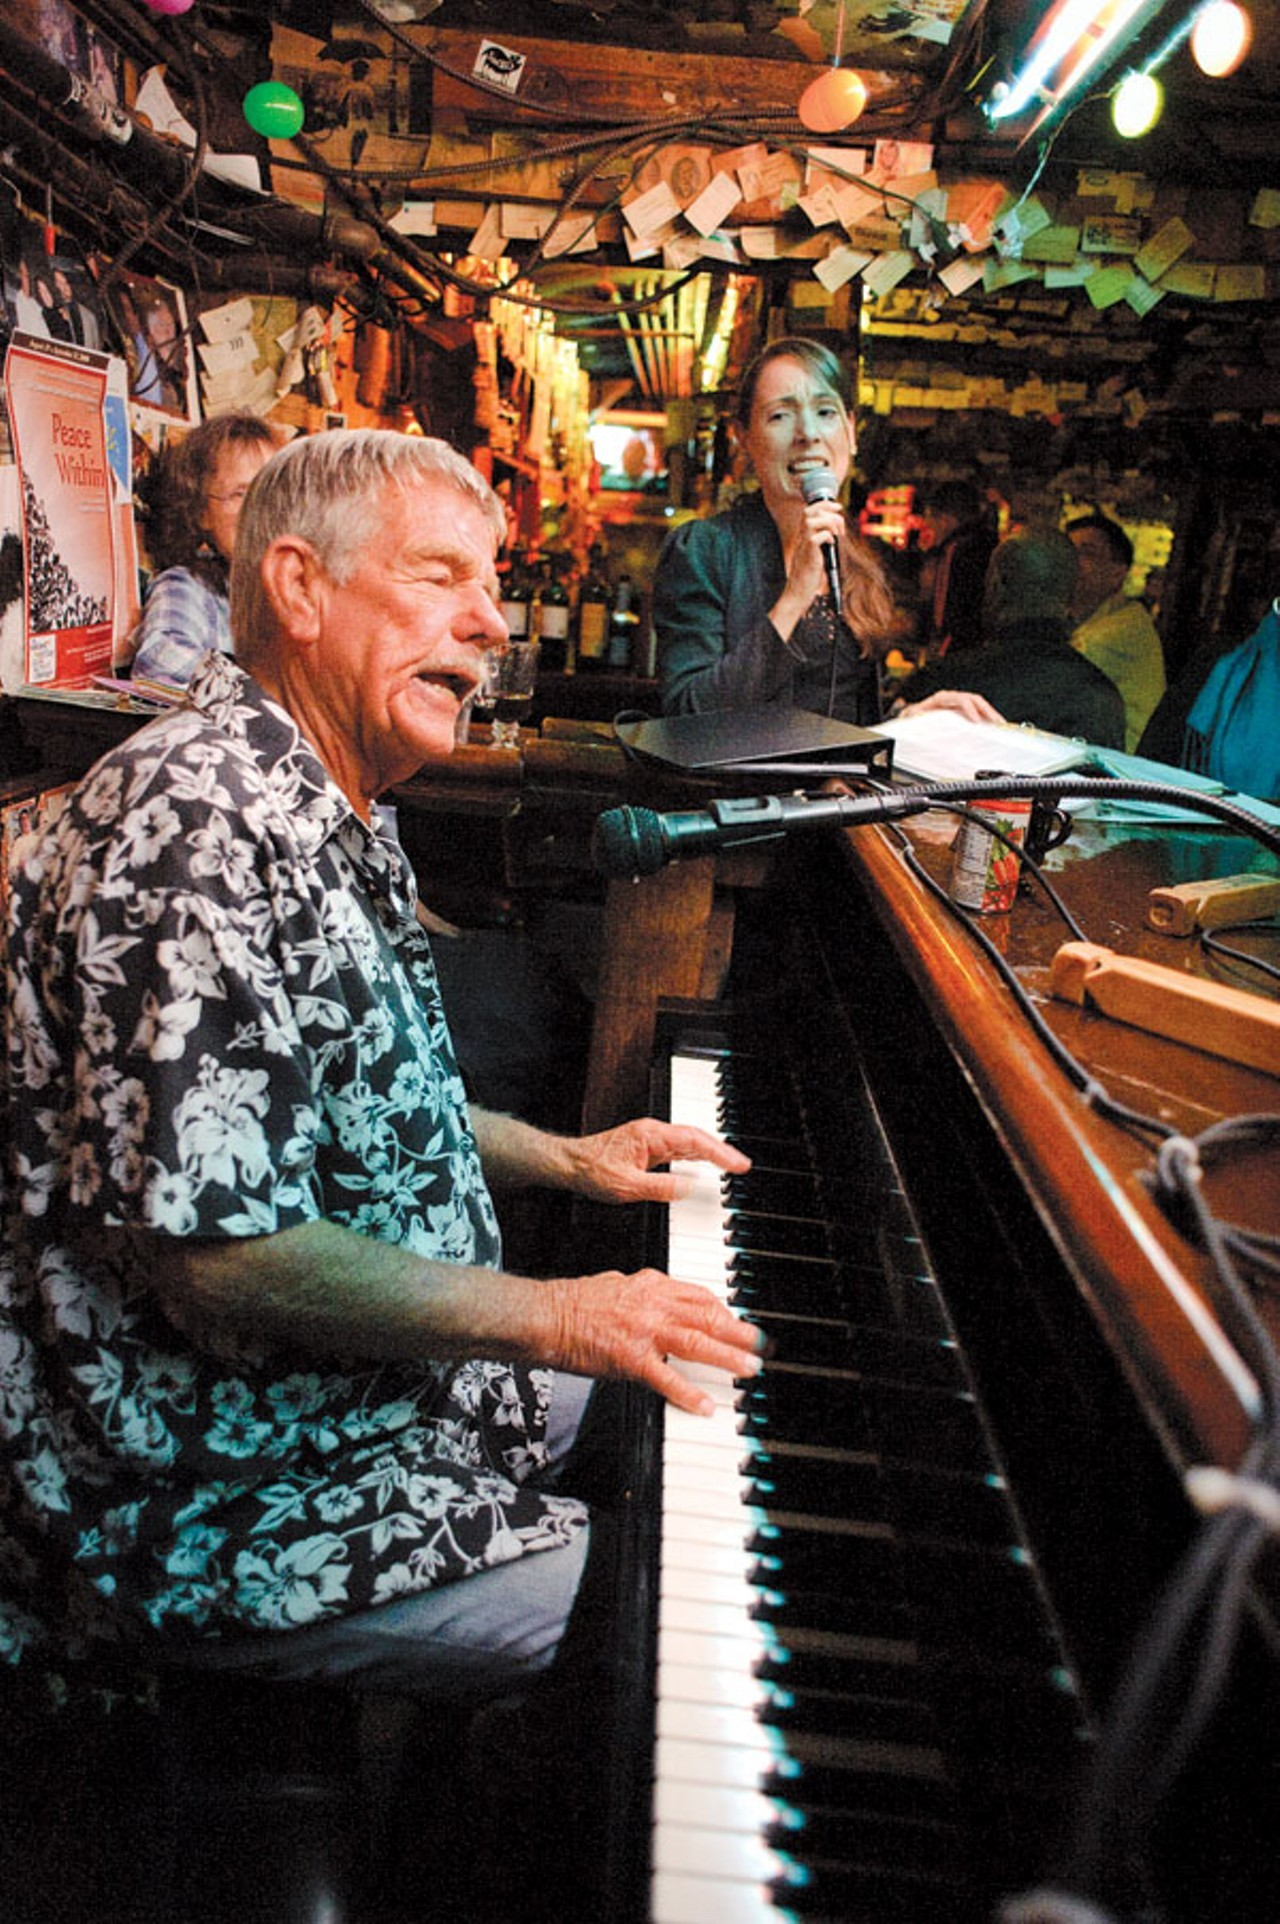 Rod Dibble, Beloved Pianist at The Alley, Dies | Arts & Music